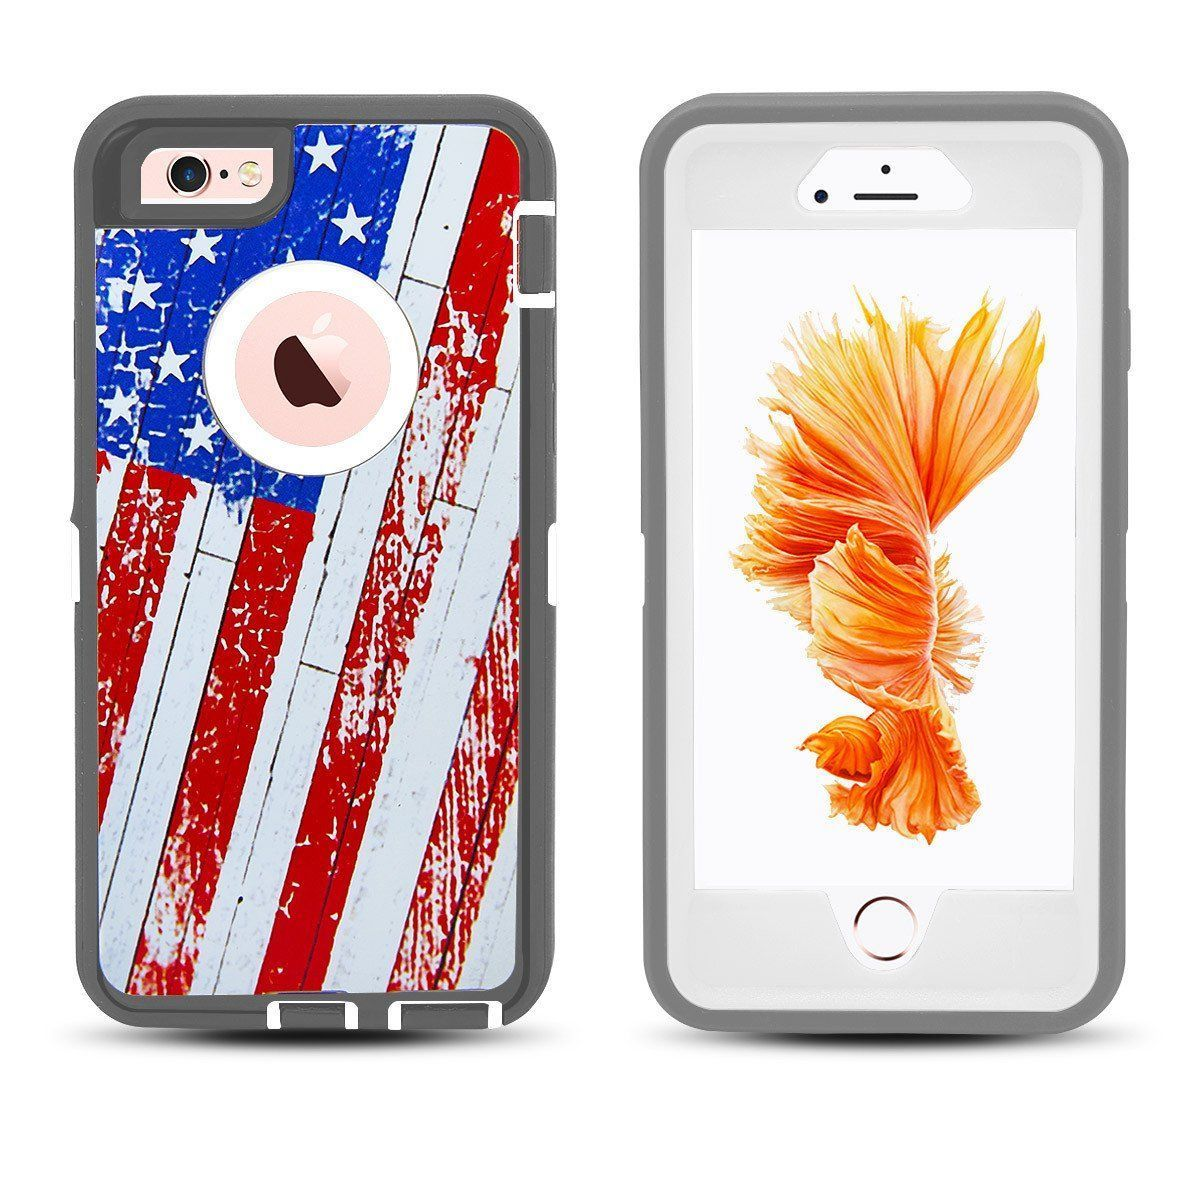 DualPro Protector Case for iPhone 6 - American Flag